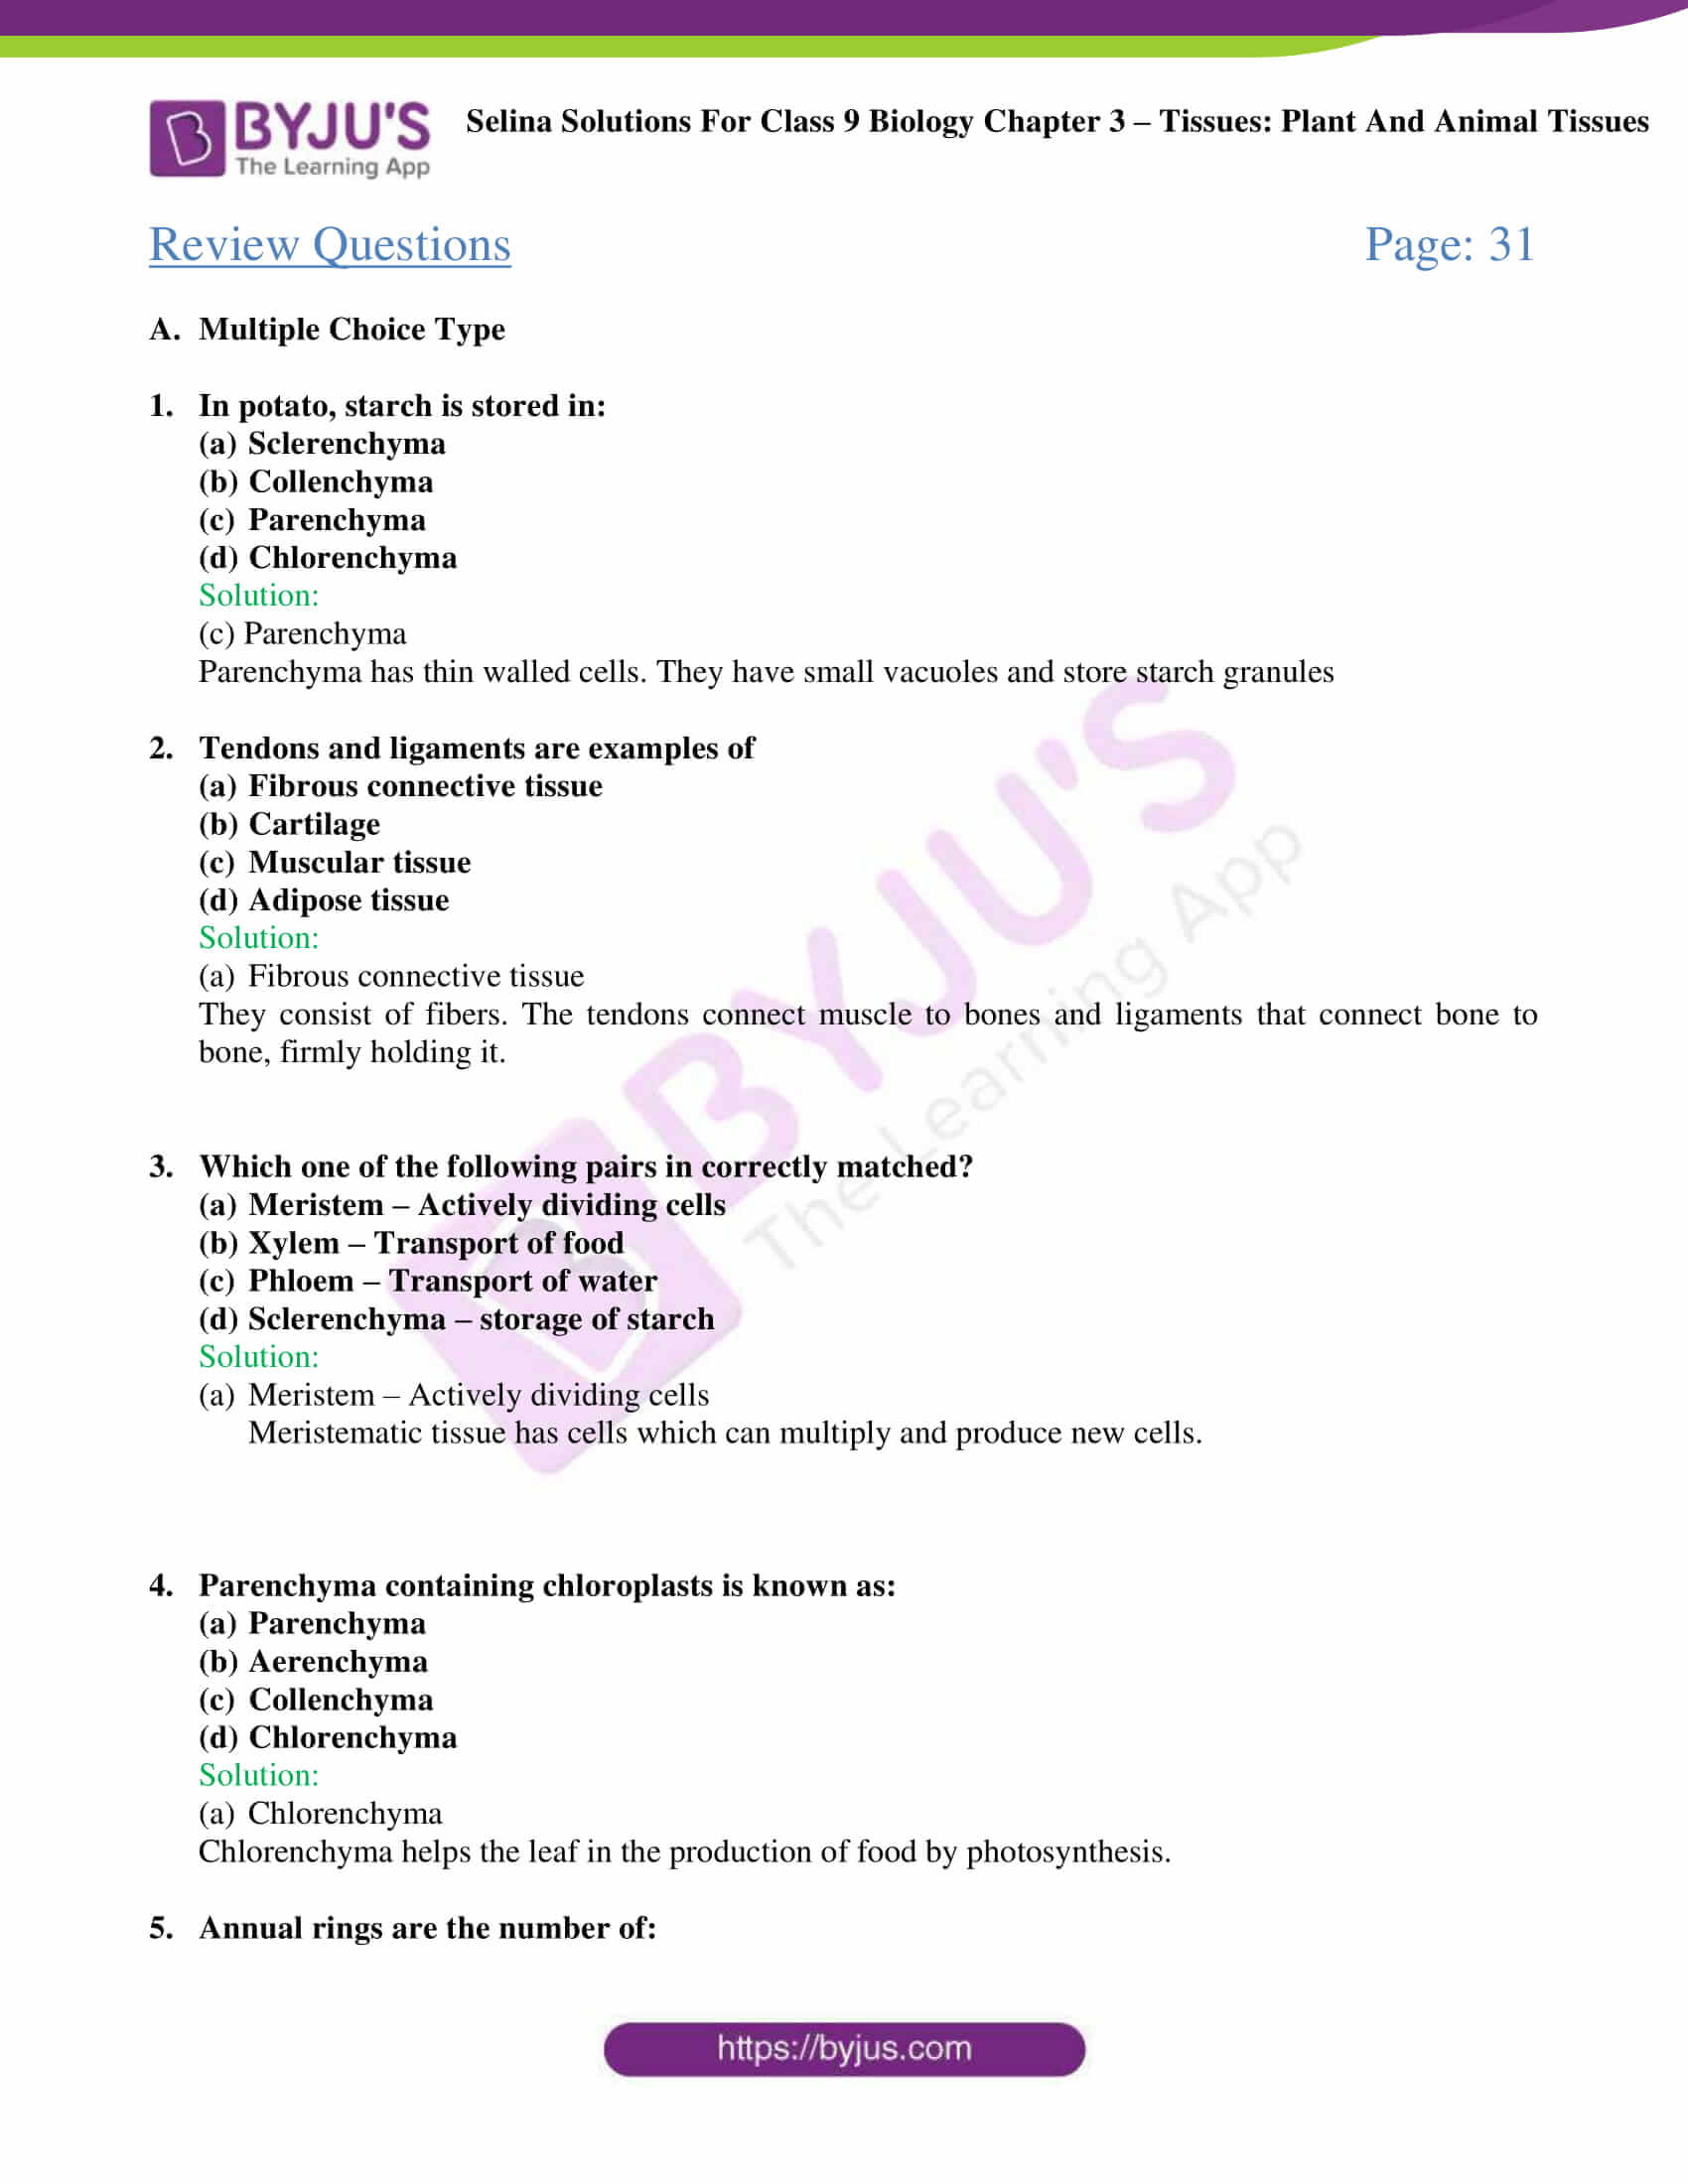 Selina Solutions For Class 9 Biology Chapter 3 Tissues Plant And Animal Tissues part 04